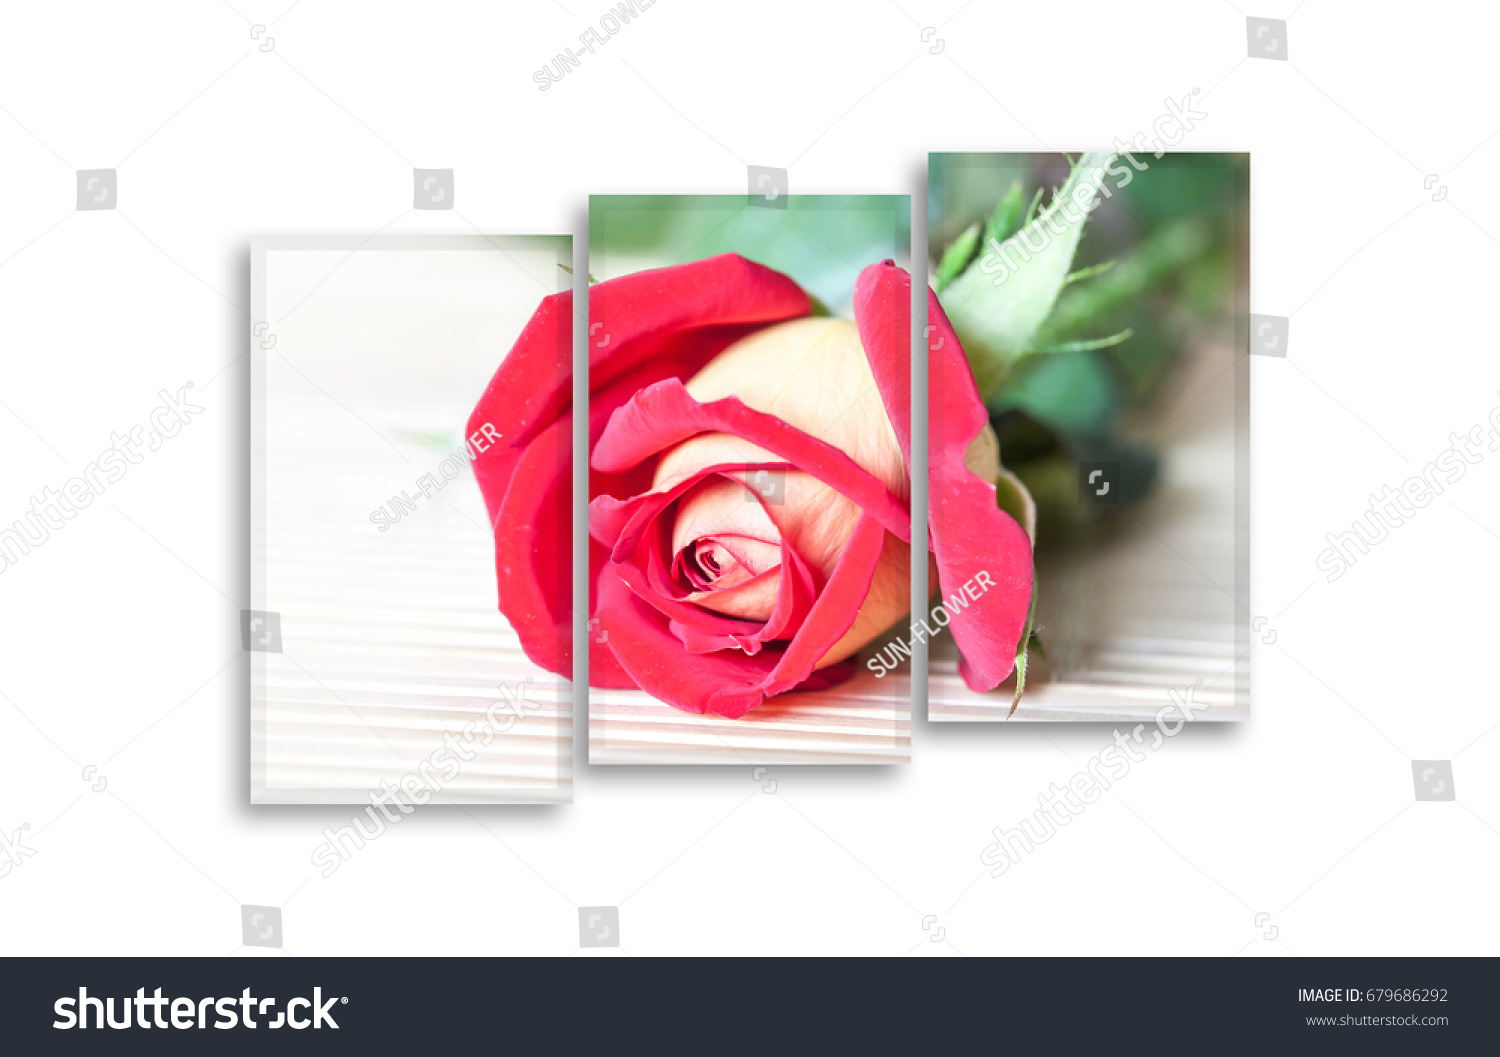 Frames set beautiful red rose picture stock photo edit now frames set with beautiful red rose picture 3 pieces photographic print floral decor mock izmirmasajfo